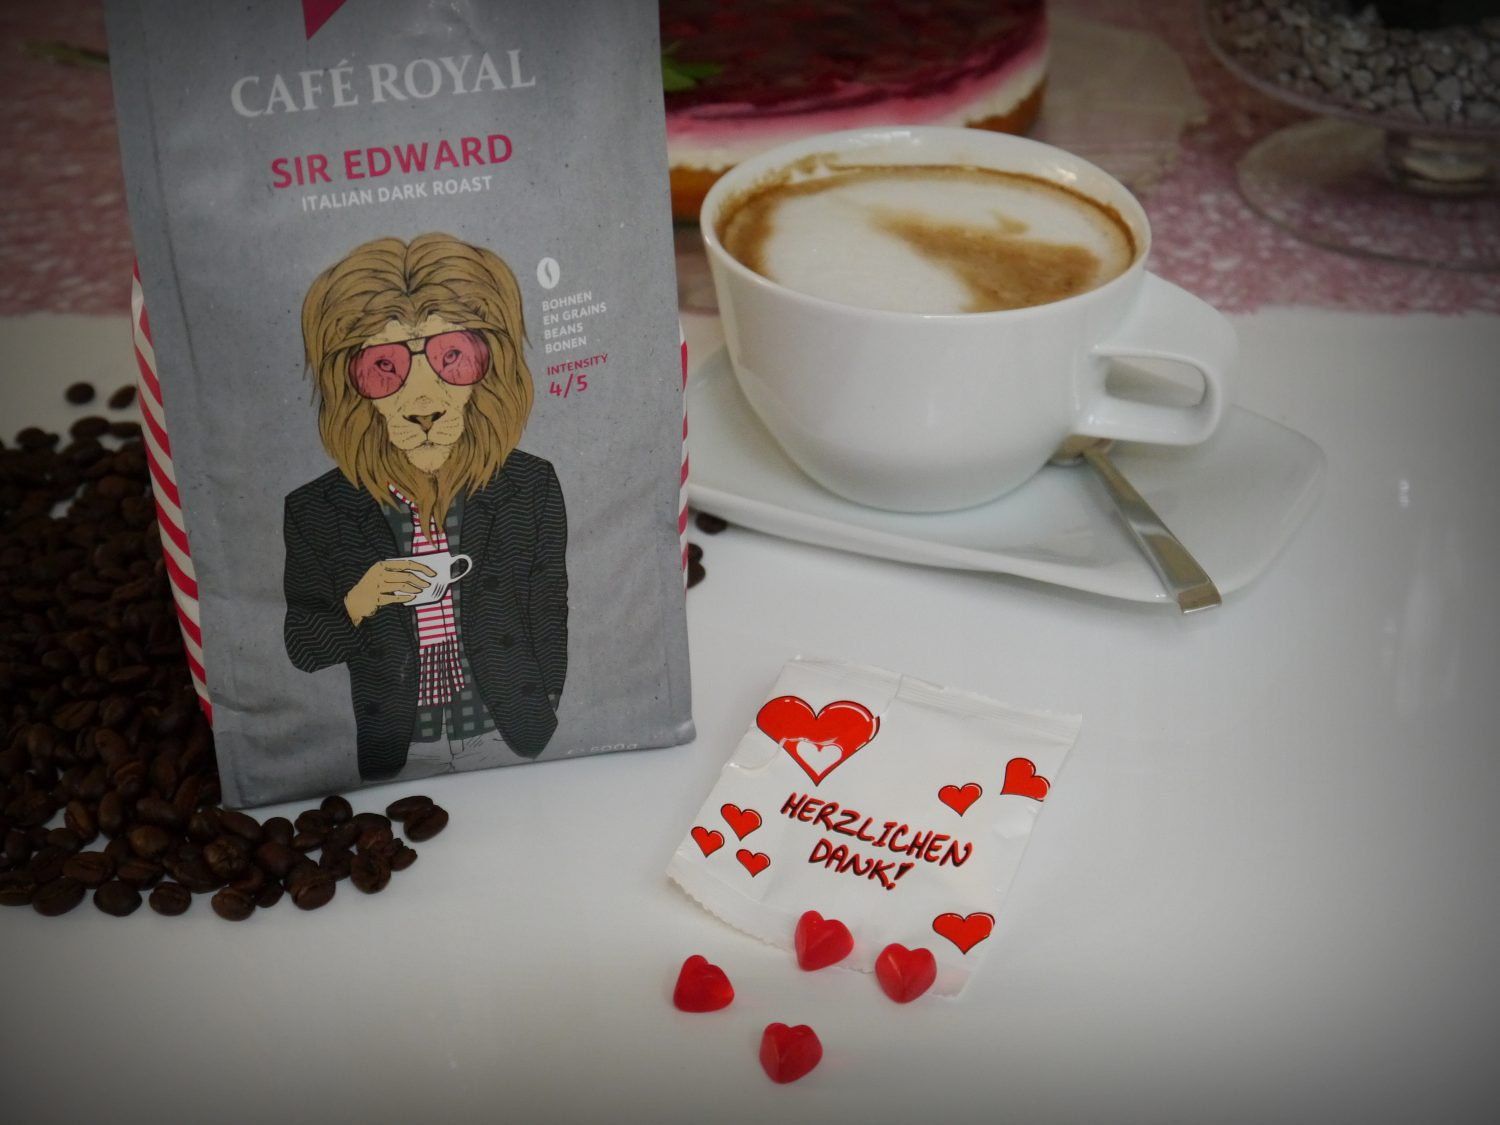 Café Royal Bohnenkaffee Sir Edward